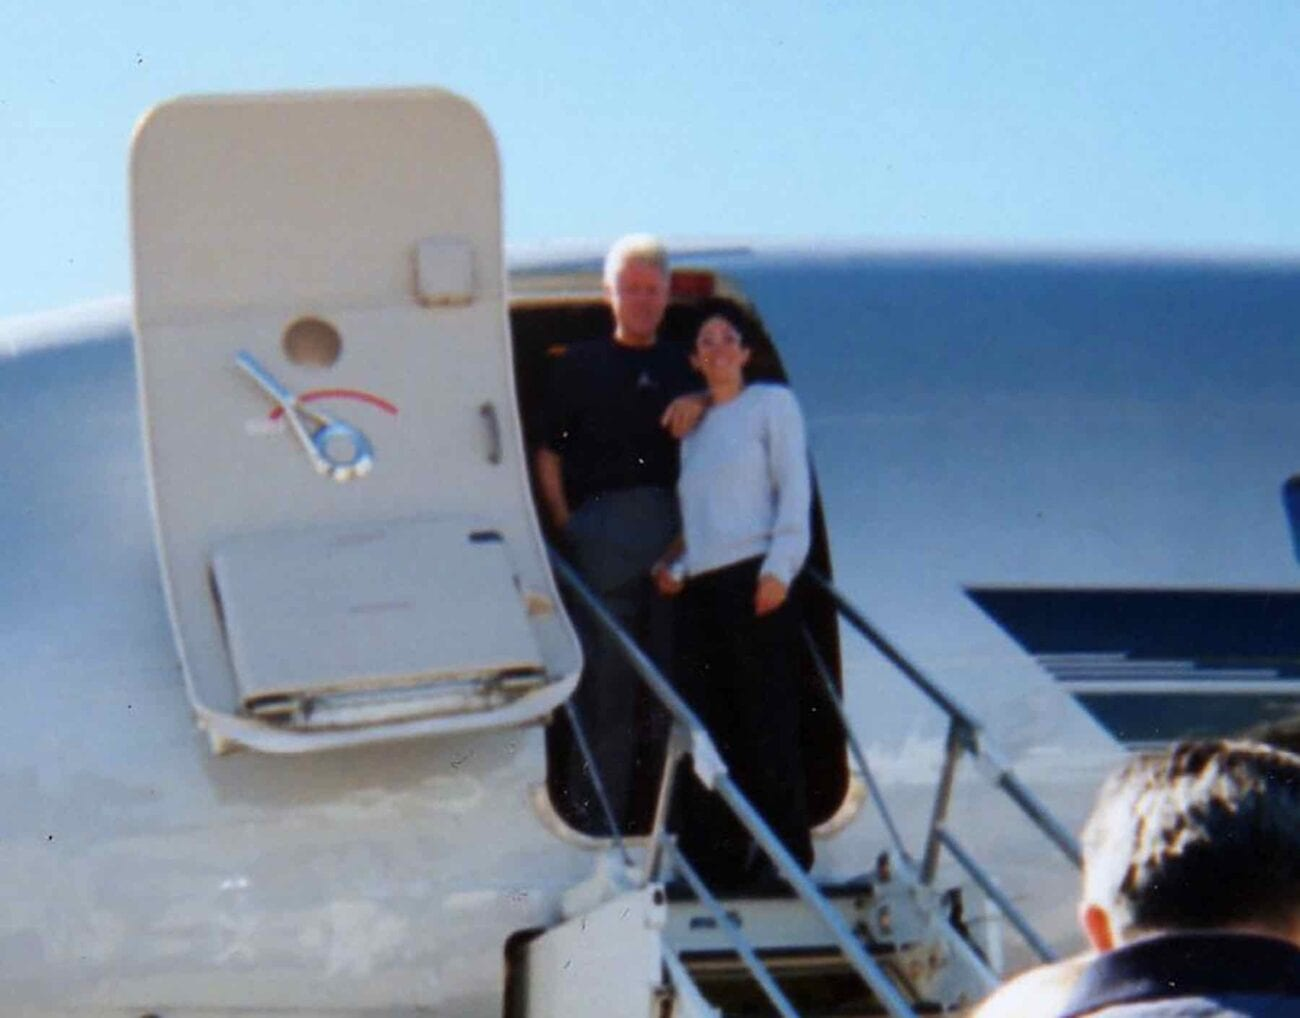 How close were Ghislaine Maxwell and Bill Clinton? Examine these newest photos showing an early interaction between the two.